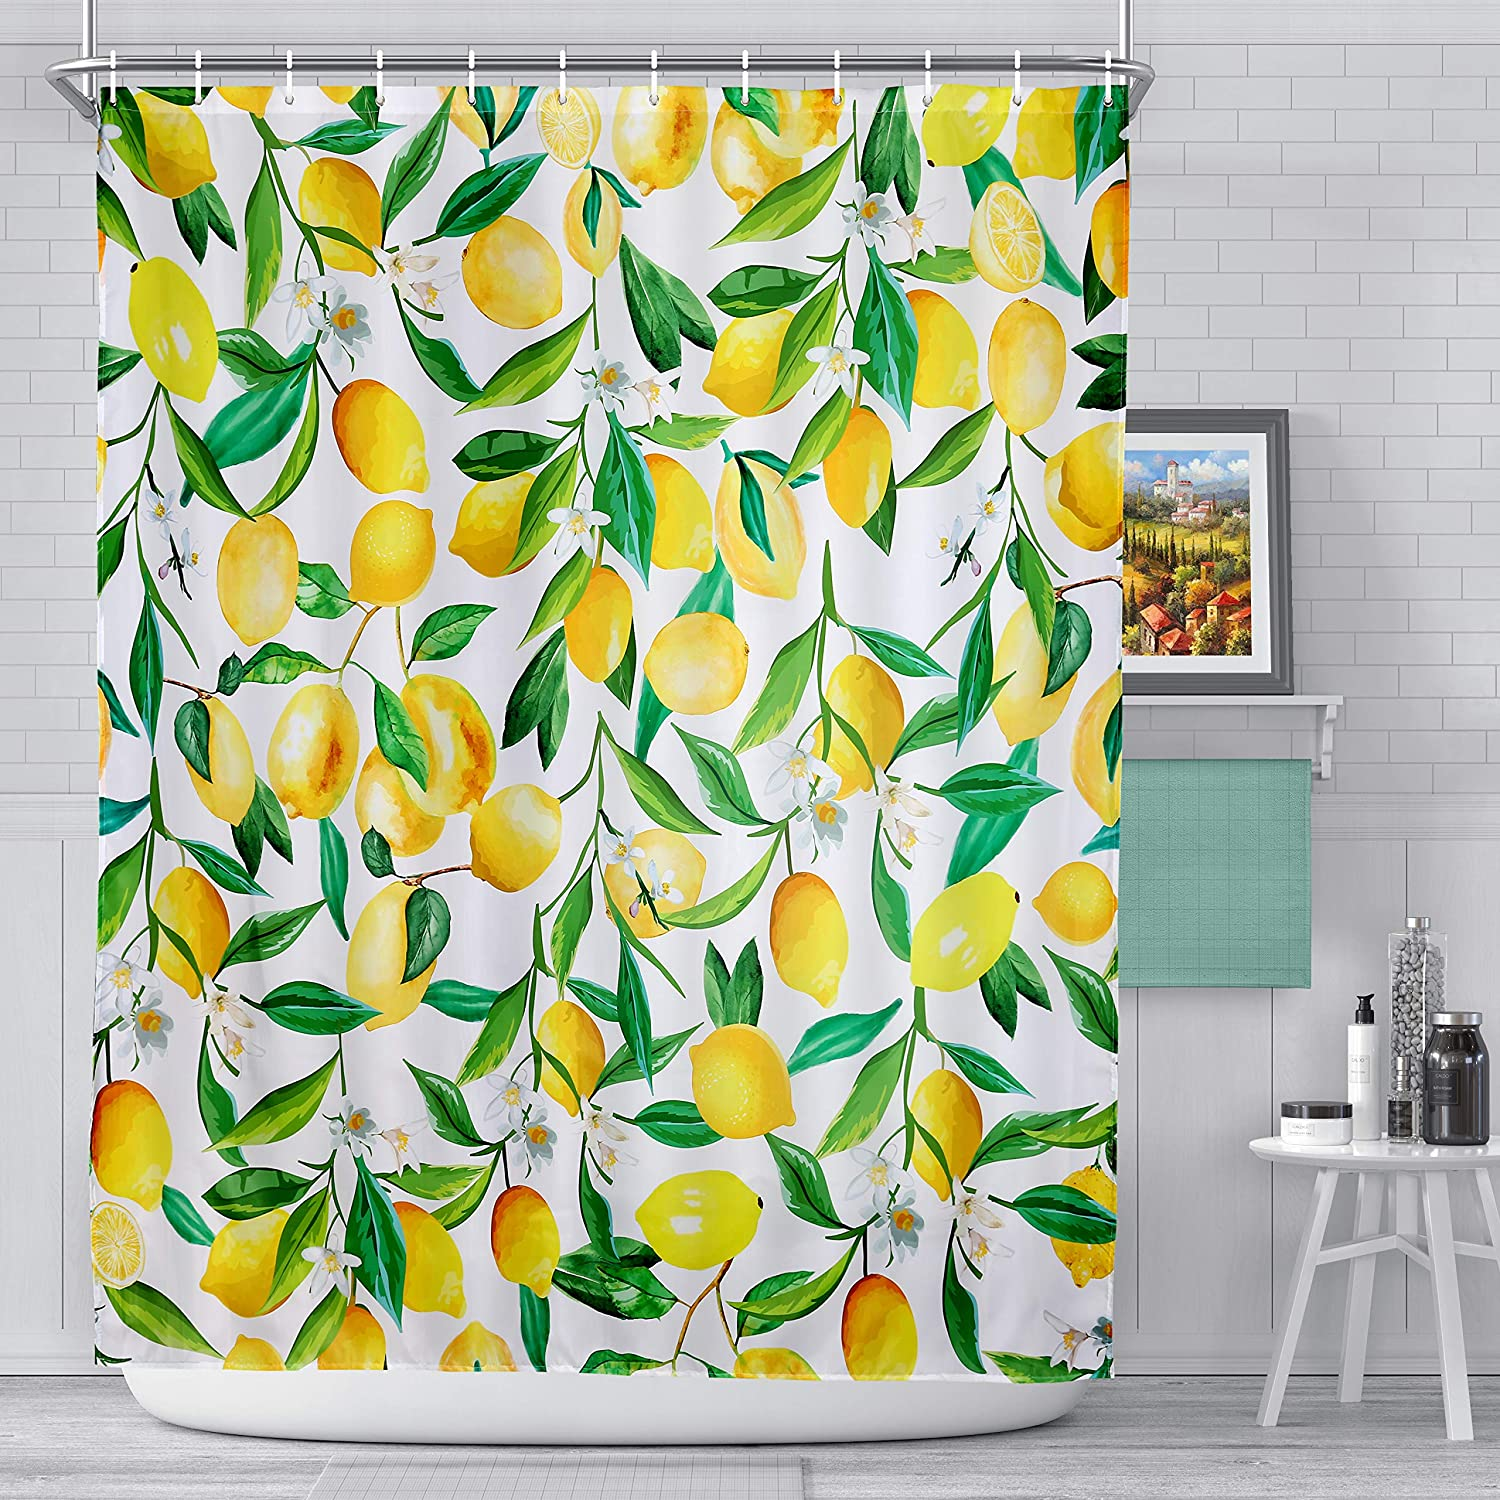 fabric shower curtain with hooks polyester fabric machine washable shower curtains 72 x 72 yellow lemon patter